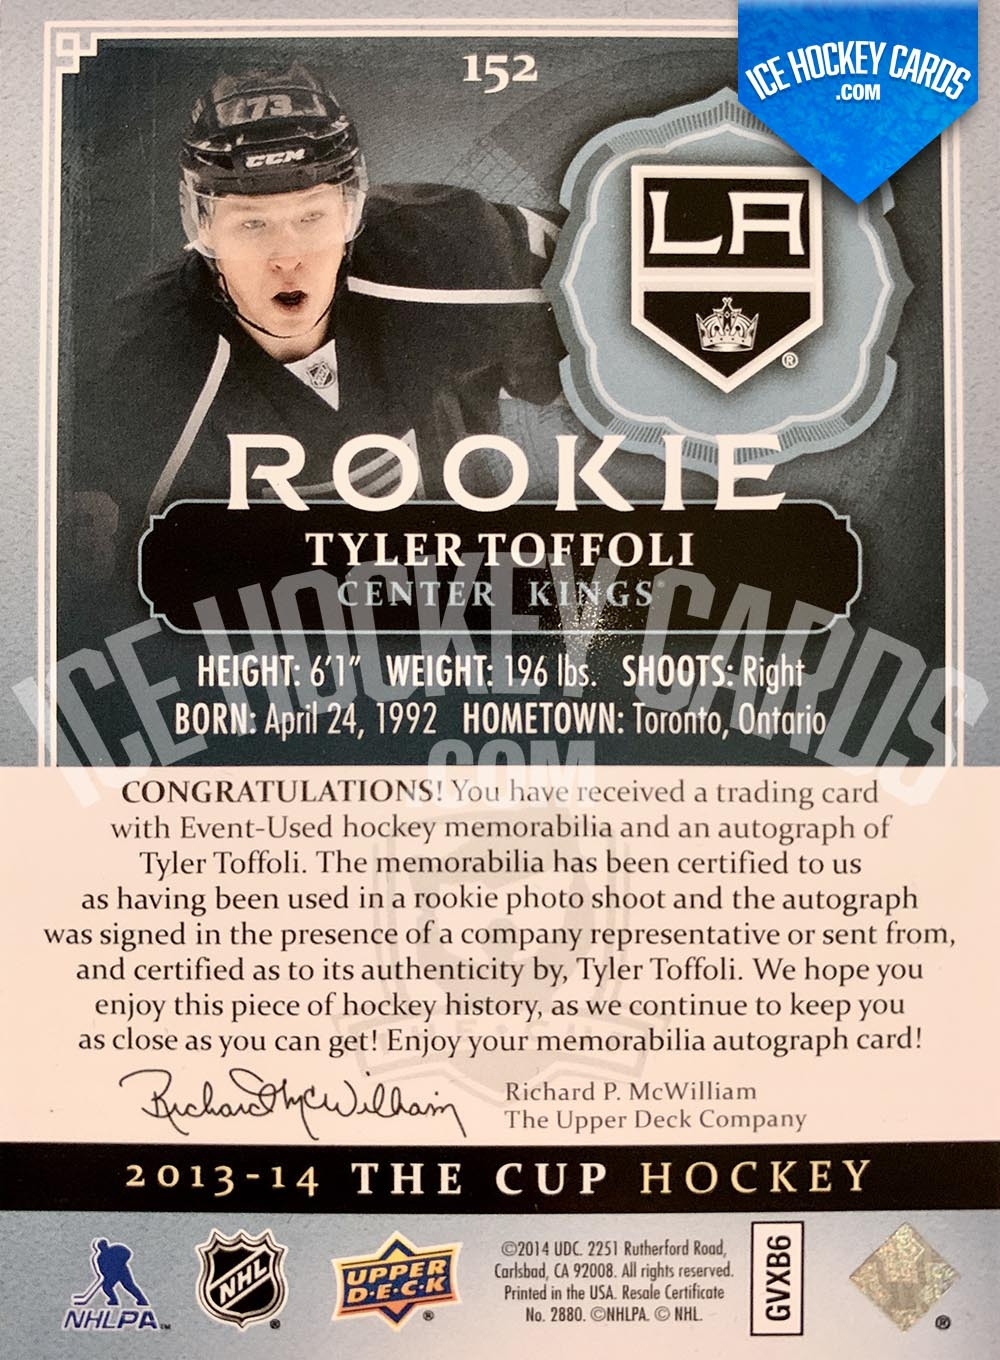 Upper Deck - The Cup 2013-14 - Tyler Toffoli Rookie Auto Patch Card back